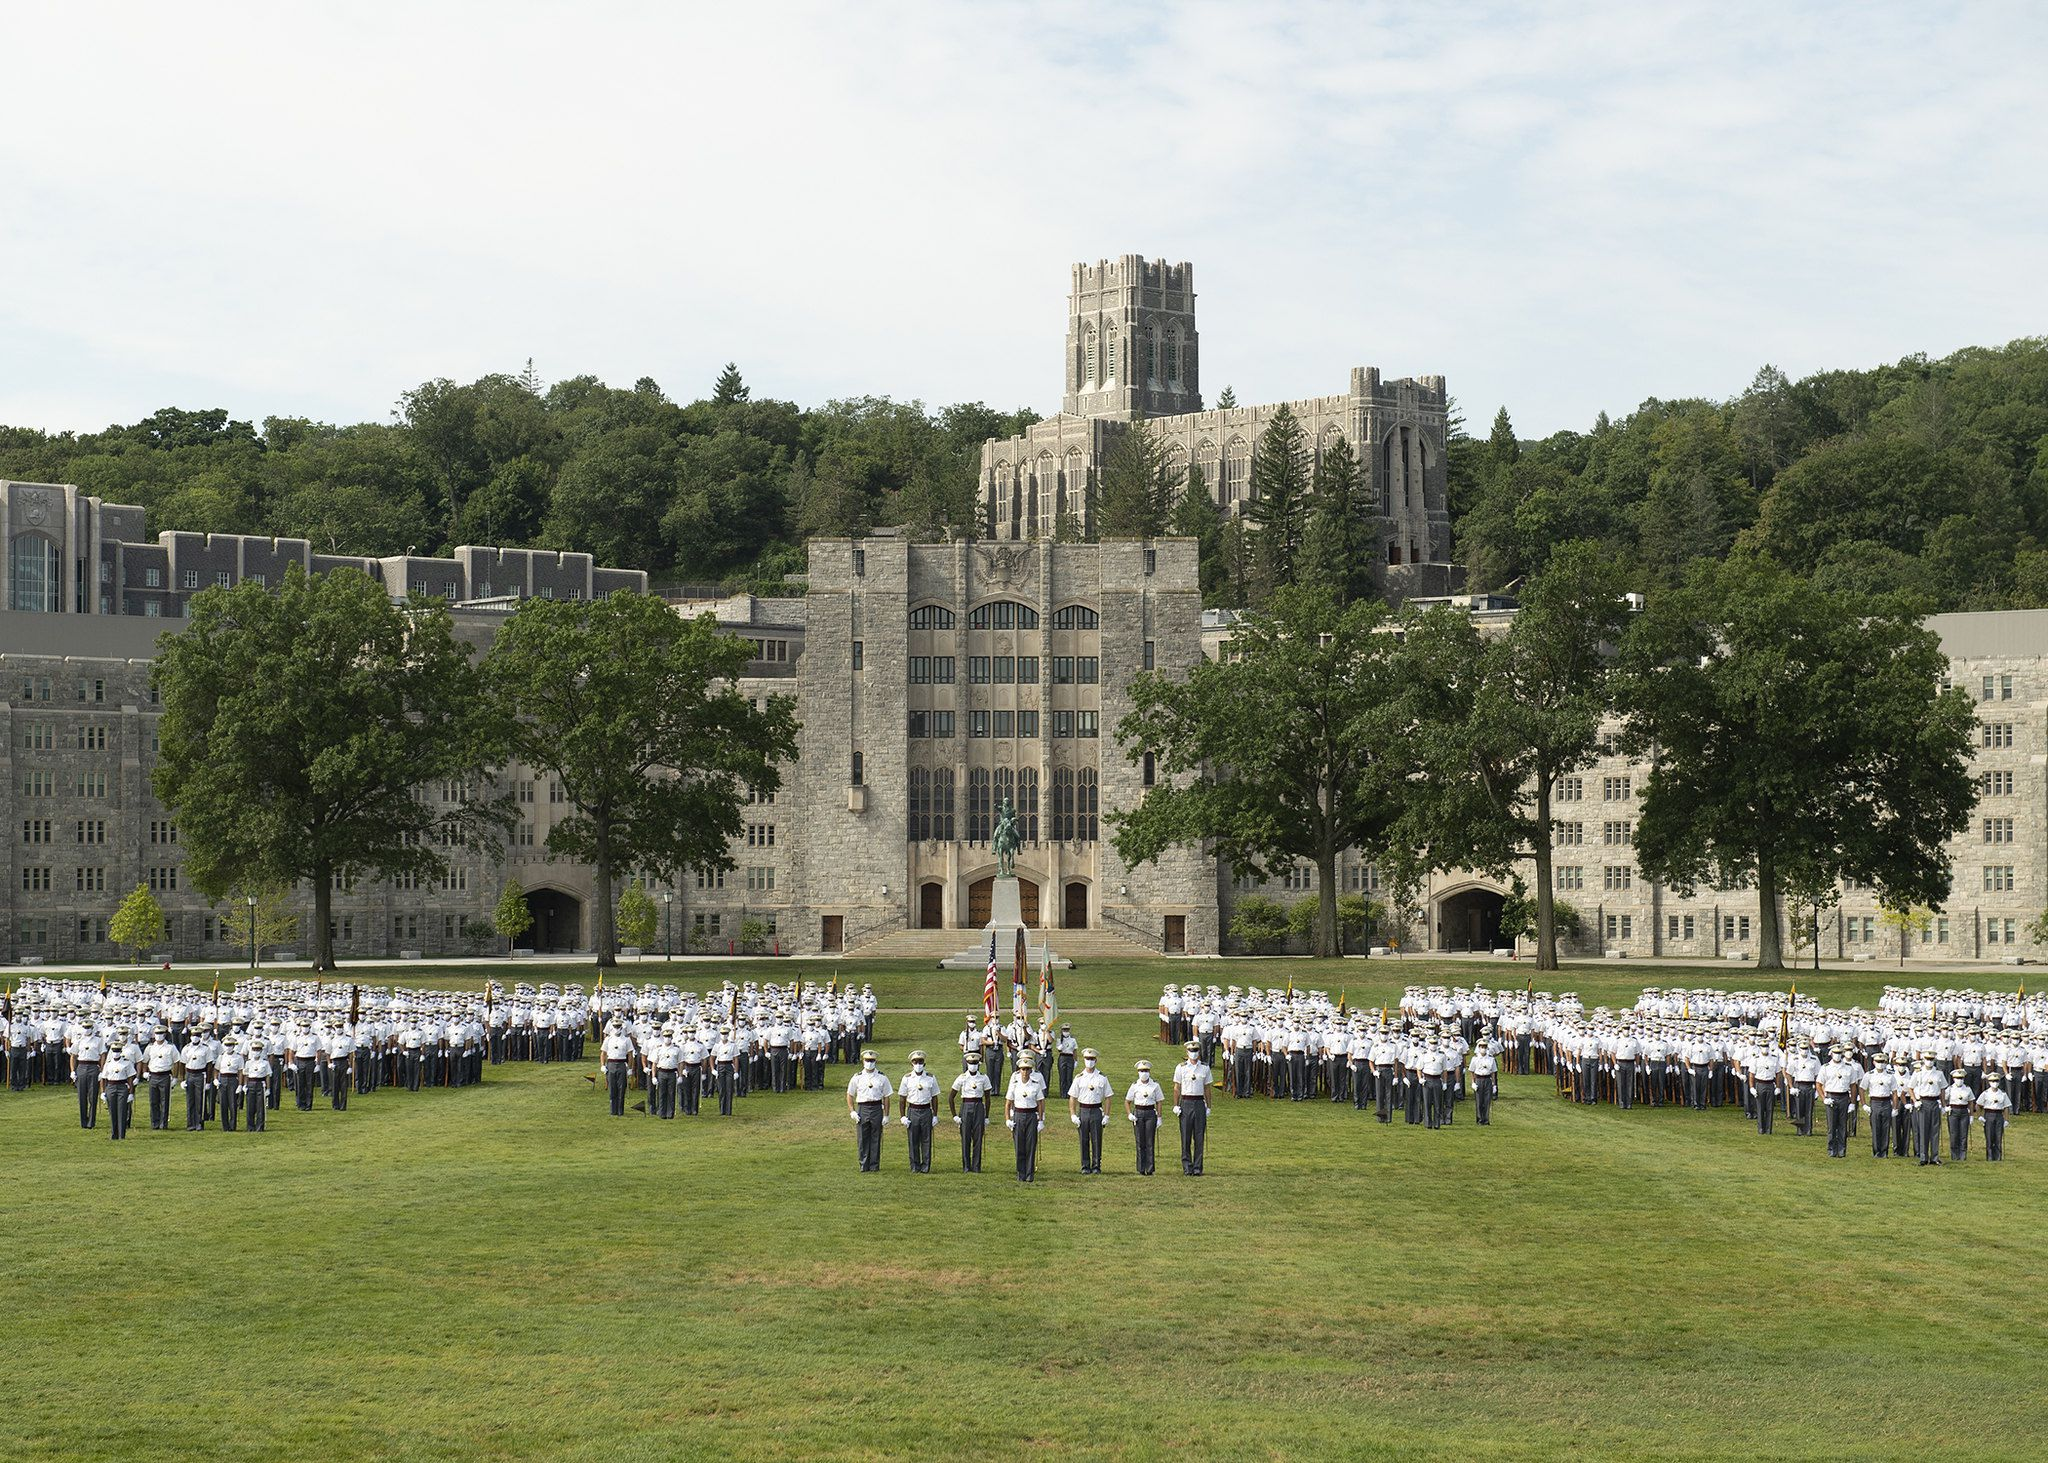 Military academies sex assault numbers were steady, then COVID hit